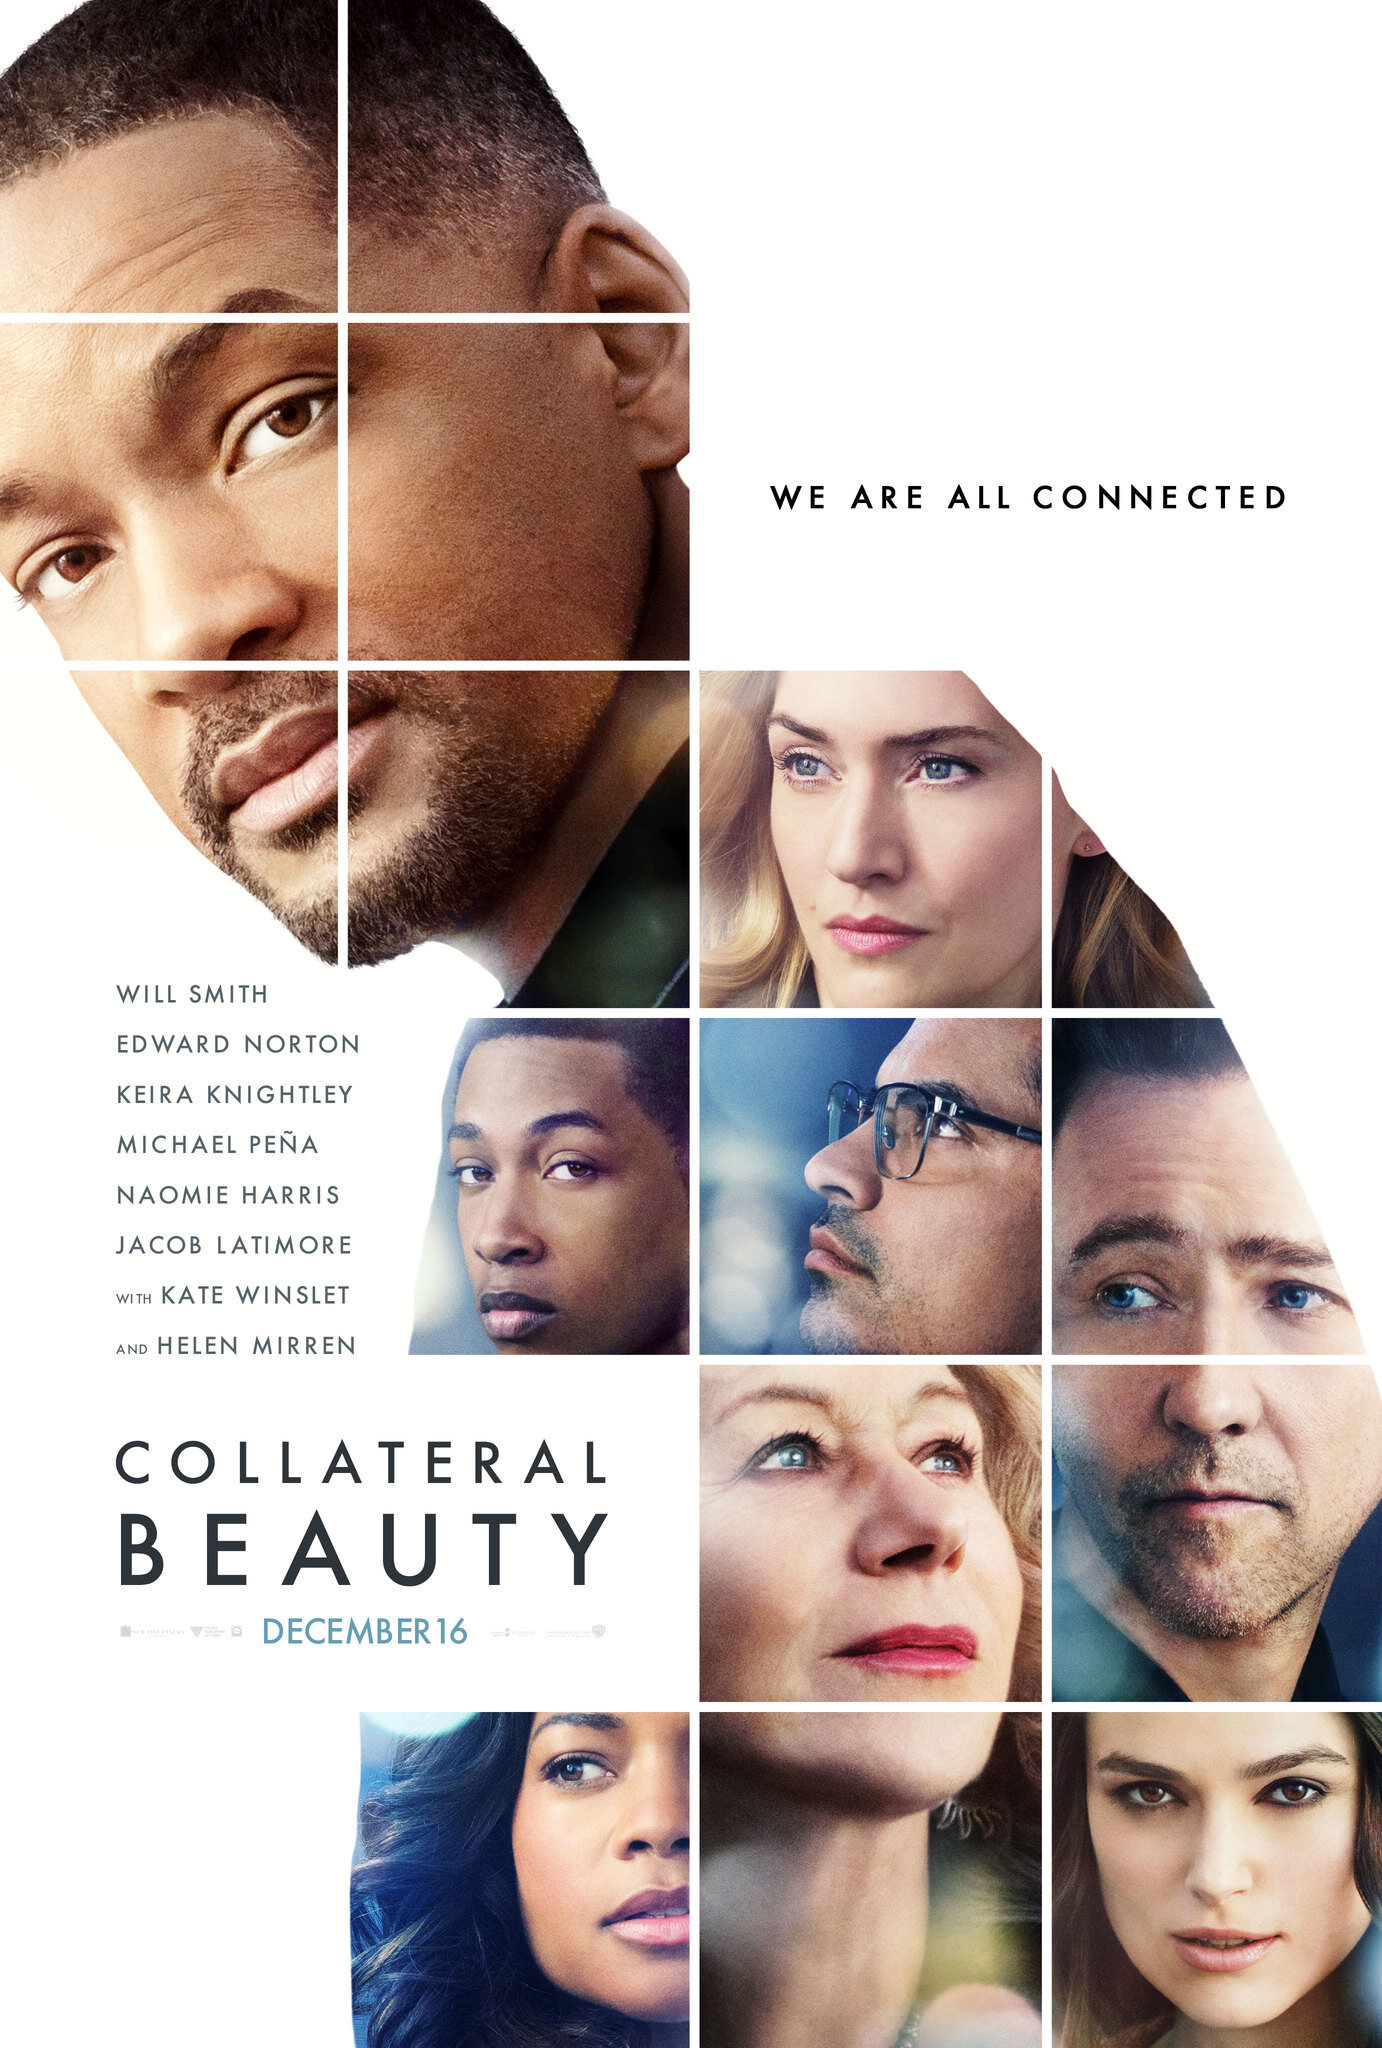 Collateral Beauty (2016) - Directed By: David FrankelStarring: Will Smith, Edward Norton, Kate Winslet, Michael Pena, Helen Mirren, Keira KnightleyRated: PG-13Run Time: 1h 37mTMM Score: 2 StarsStrengths: NothingWeakness: Plot, Story, Concept, Predictable Twist